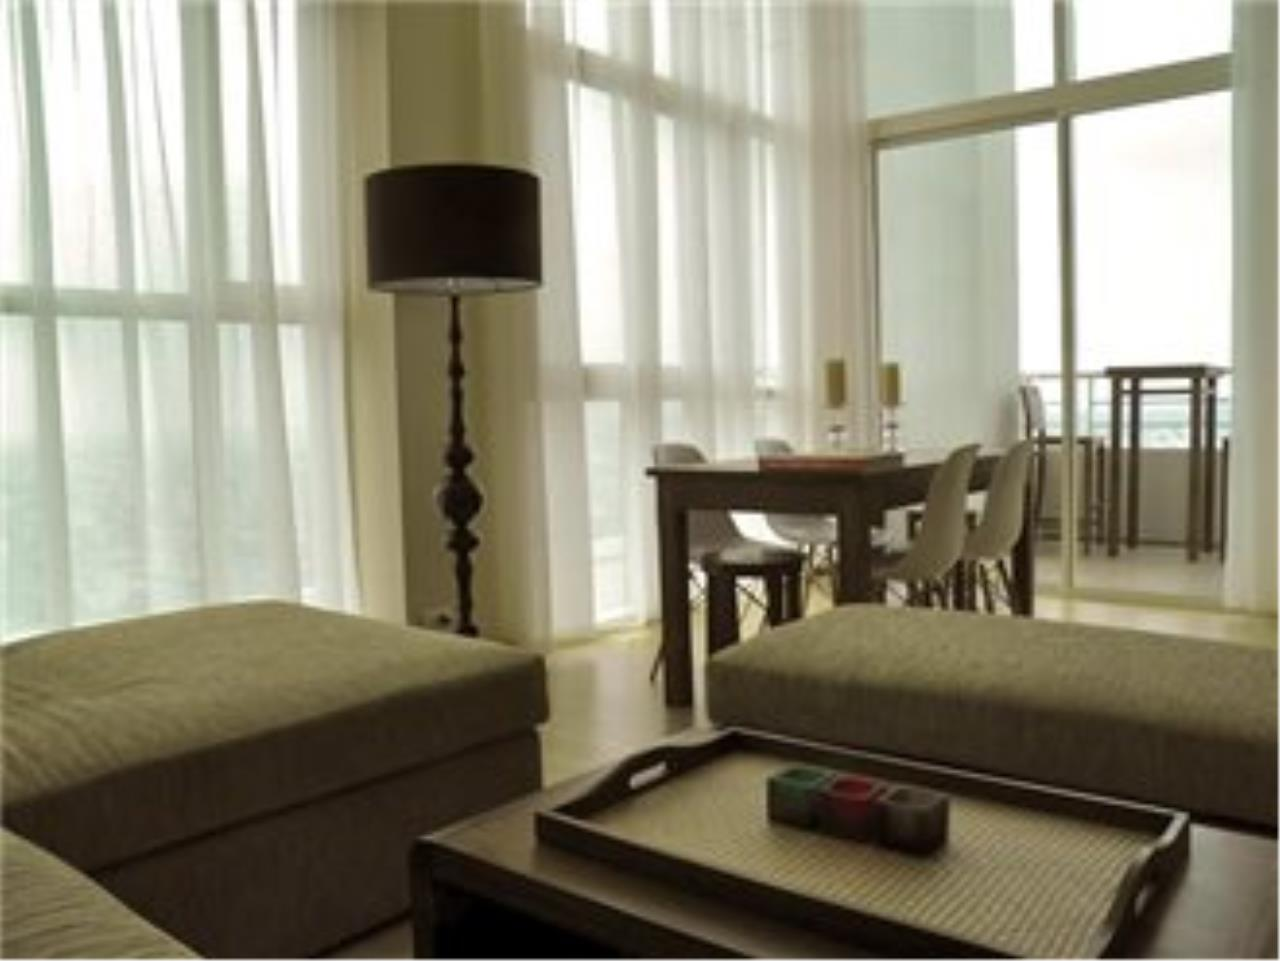 BKK Condos Agency's 3 bedroom penthouse for sale at The Lighthouse 34